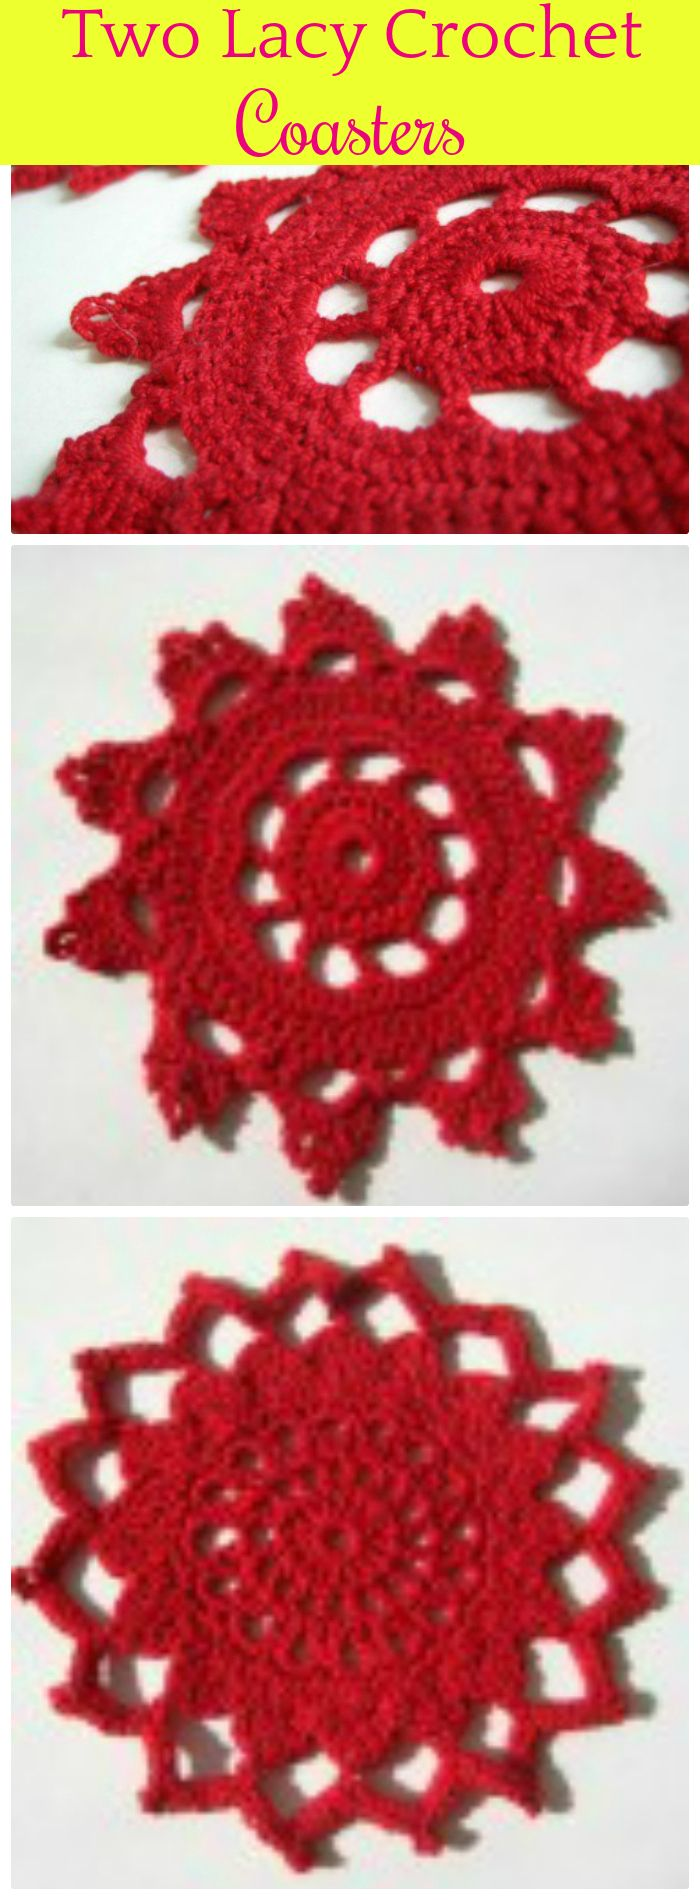 DIY Two Lacy Crochet Coasters - free crochet coaster patterns | Free Crochet Coaster Patterns